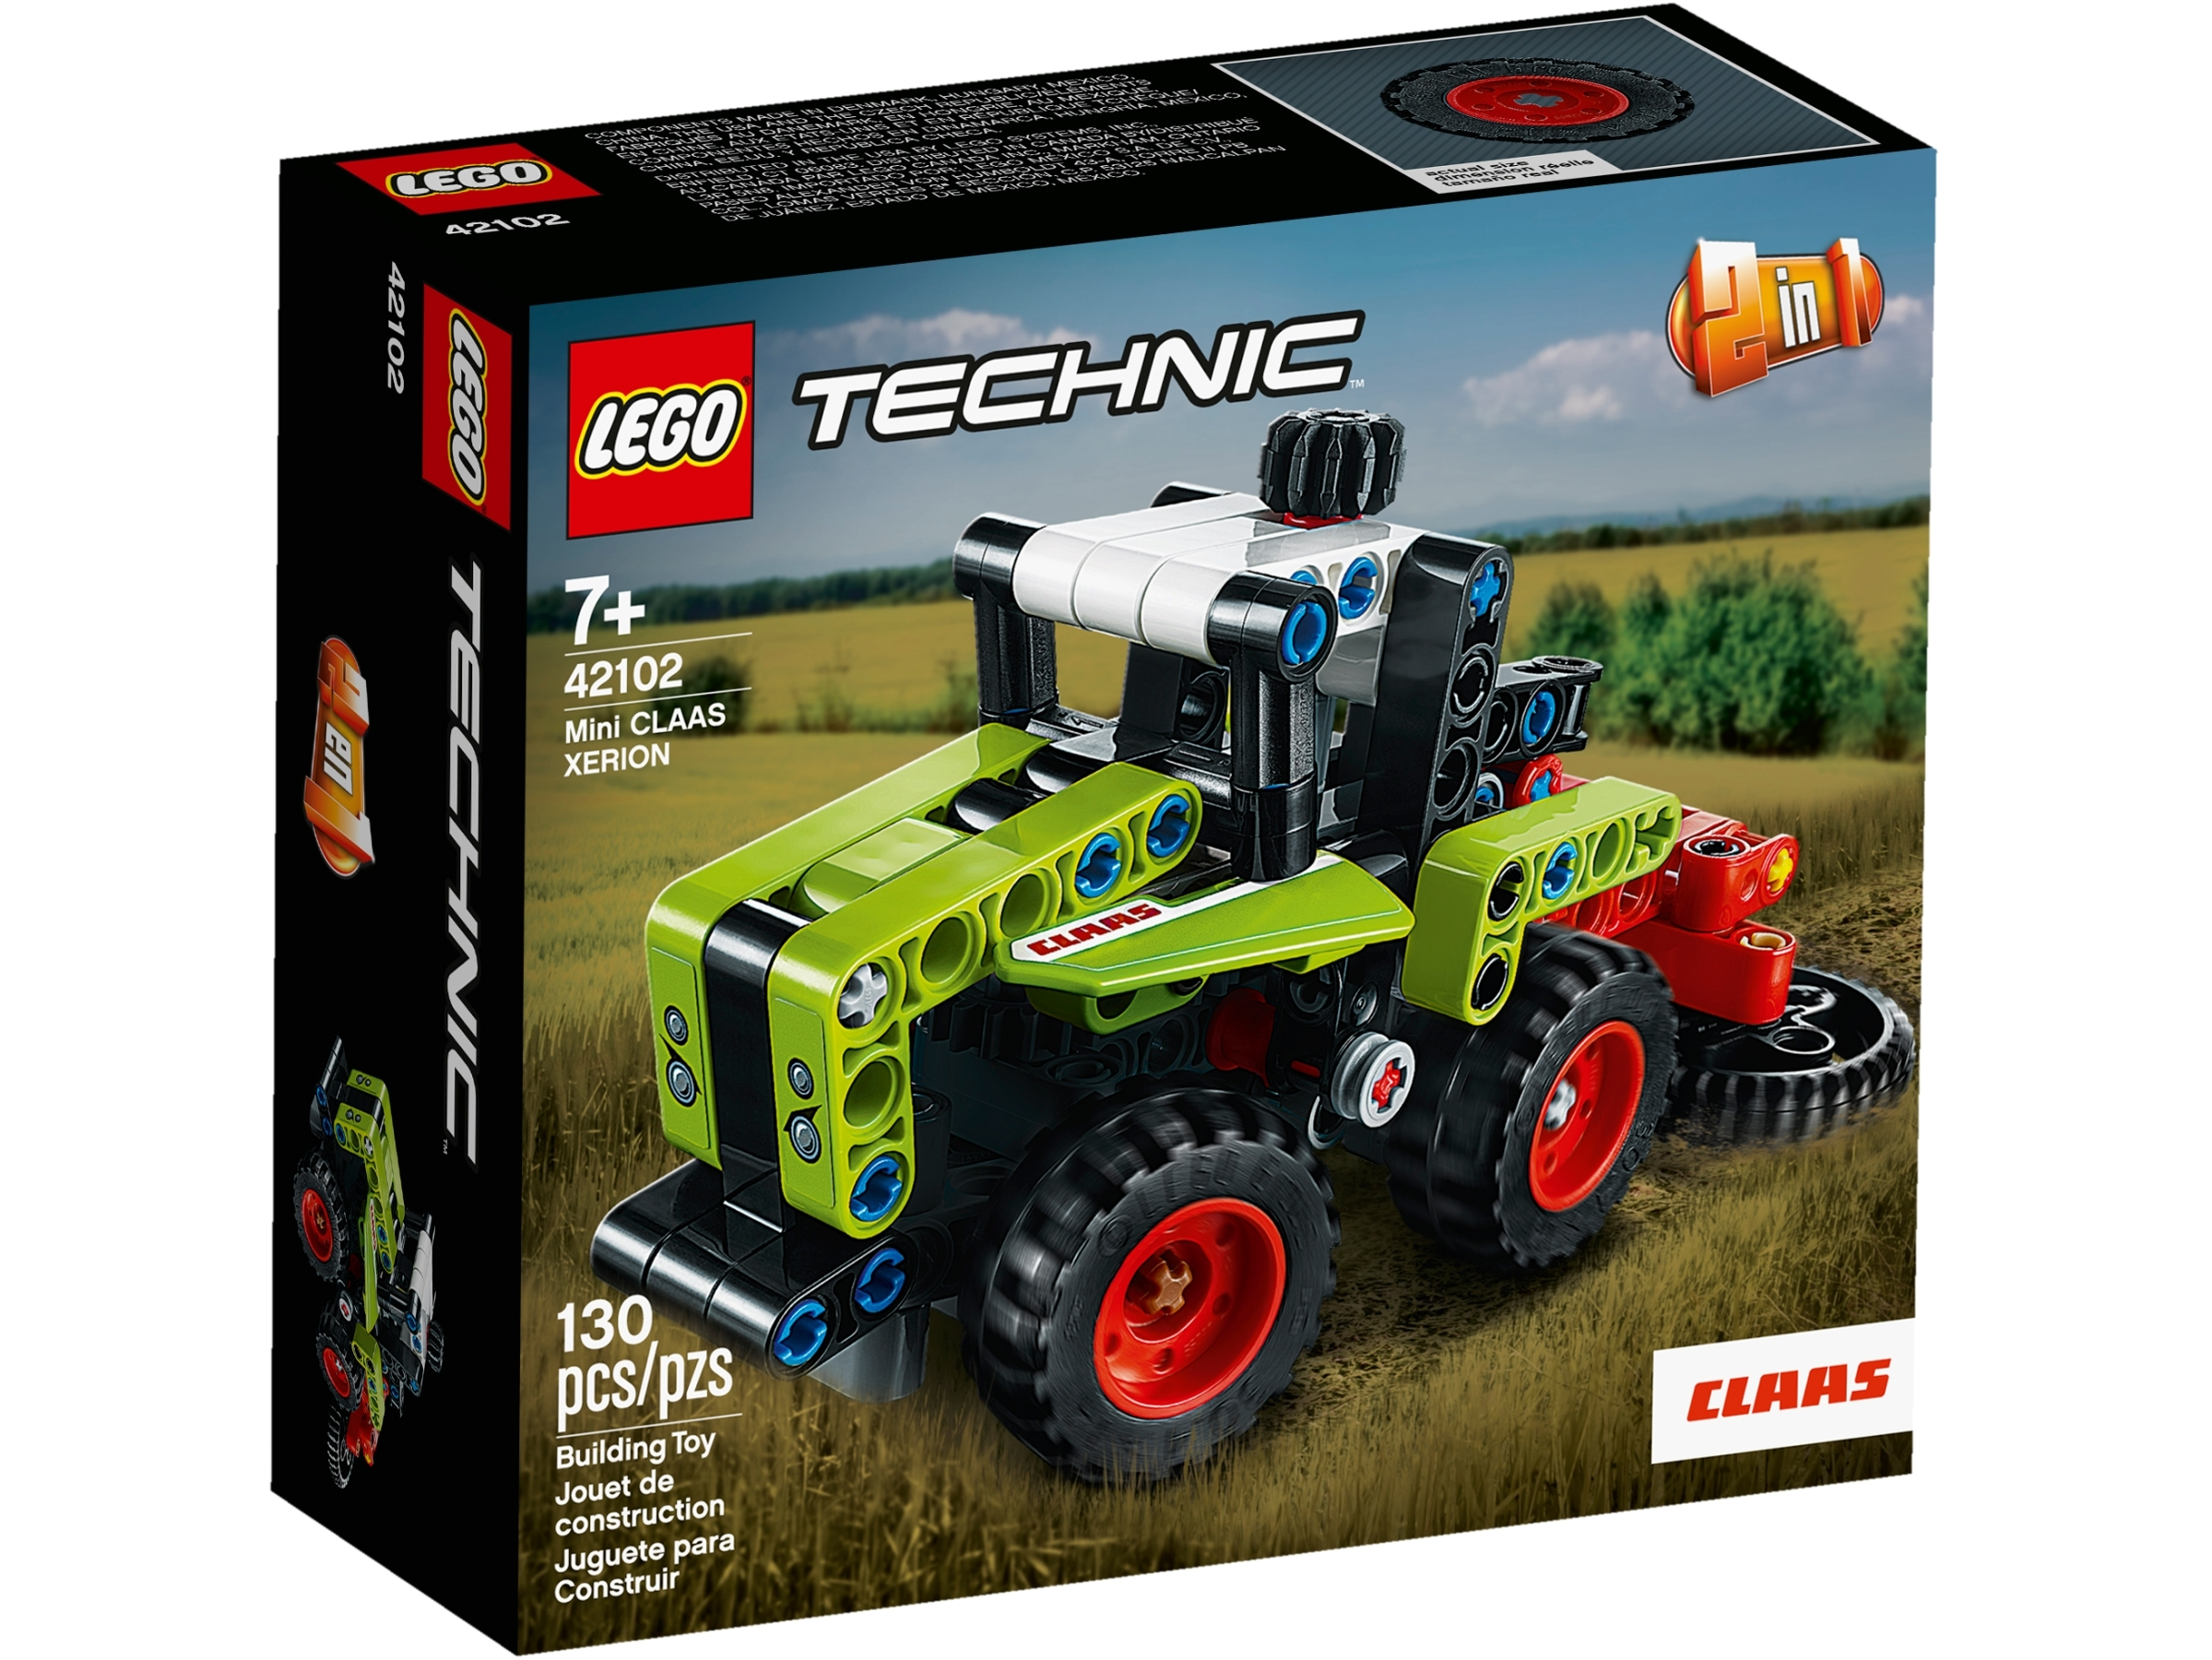 Lego 42102 LEGO Technic Mini CLAAS XERION 42102 Tractor Building Kit 130 Piece